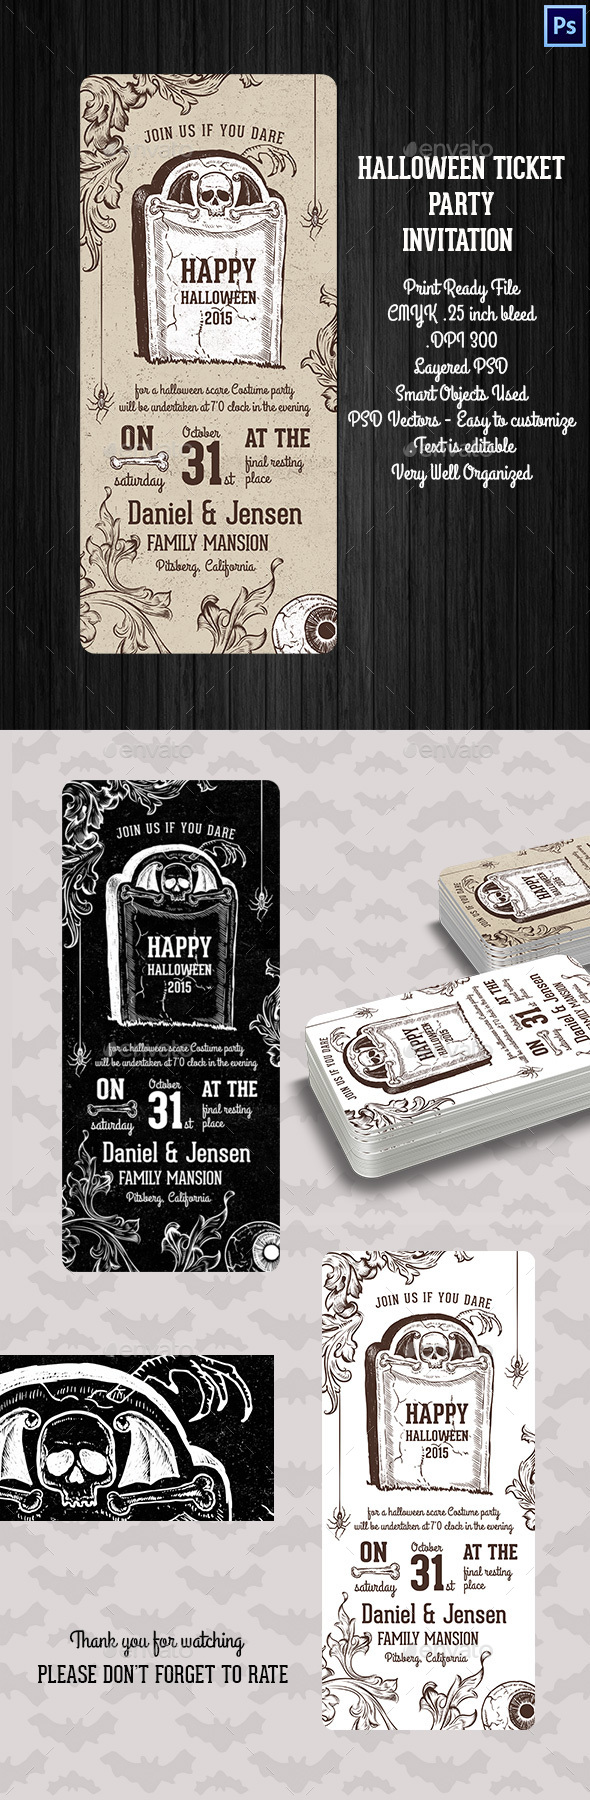 Halloween Ticket Party Invitation by Squirrel92 | GraphicRiver